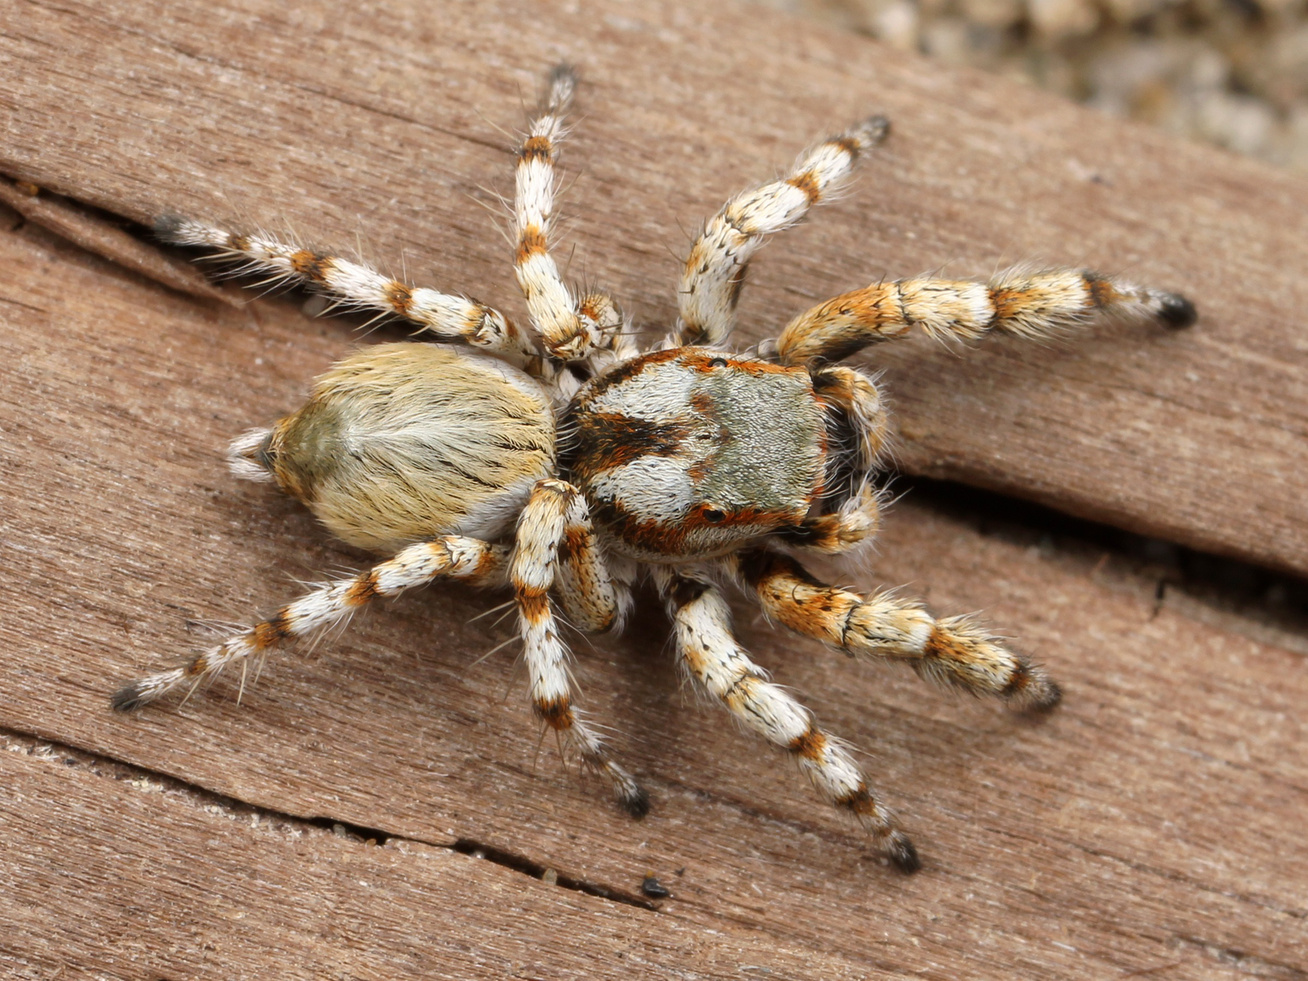 spider-hairy-arachnid-adult-45887